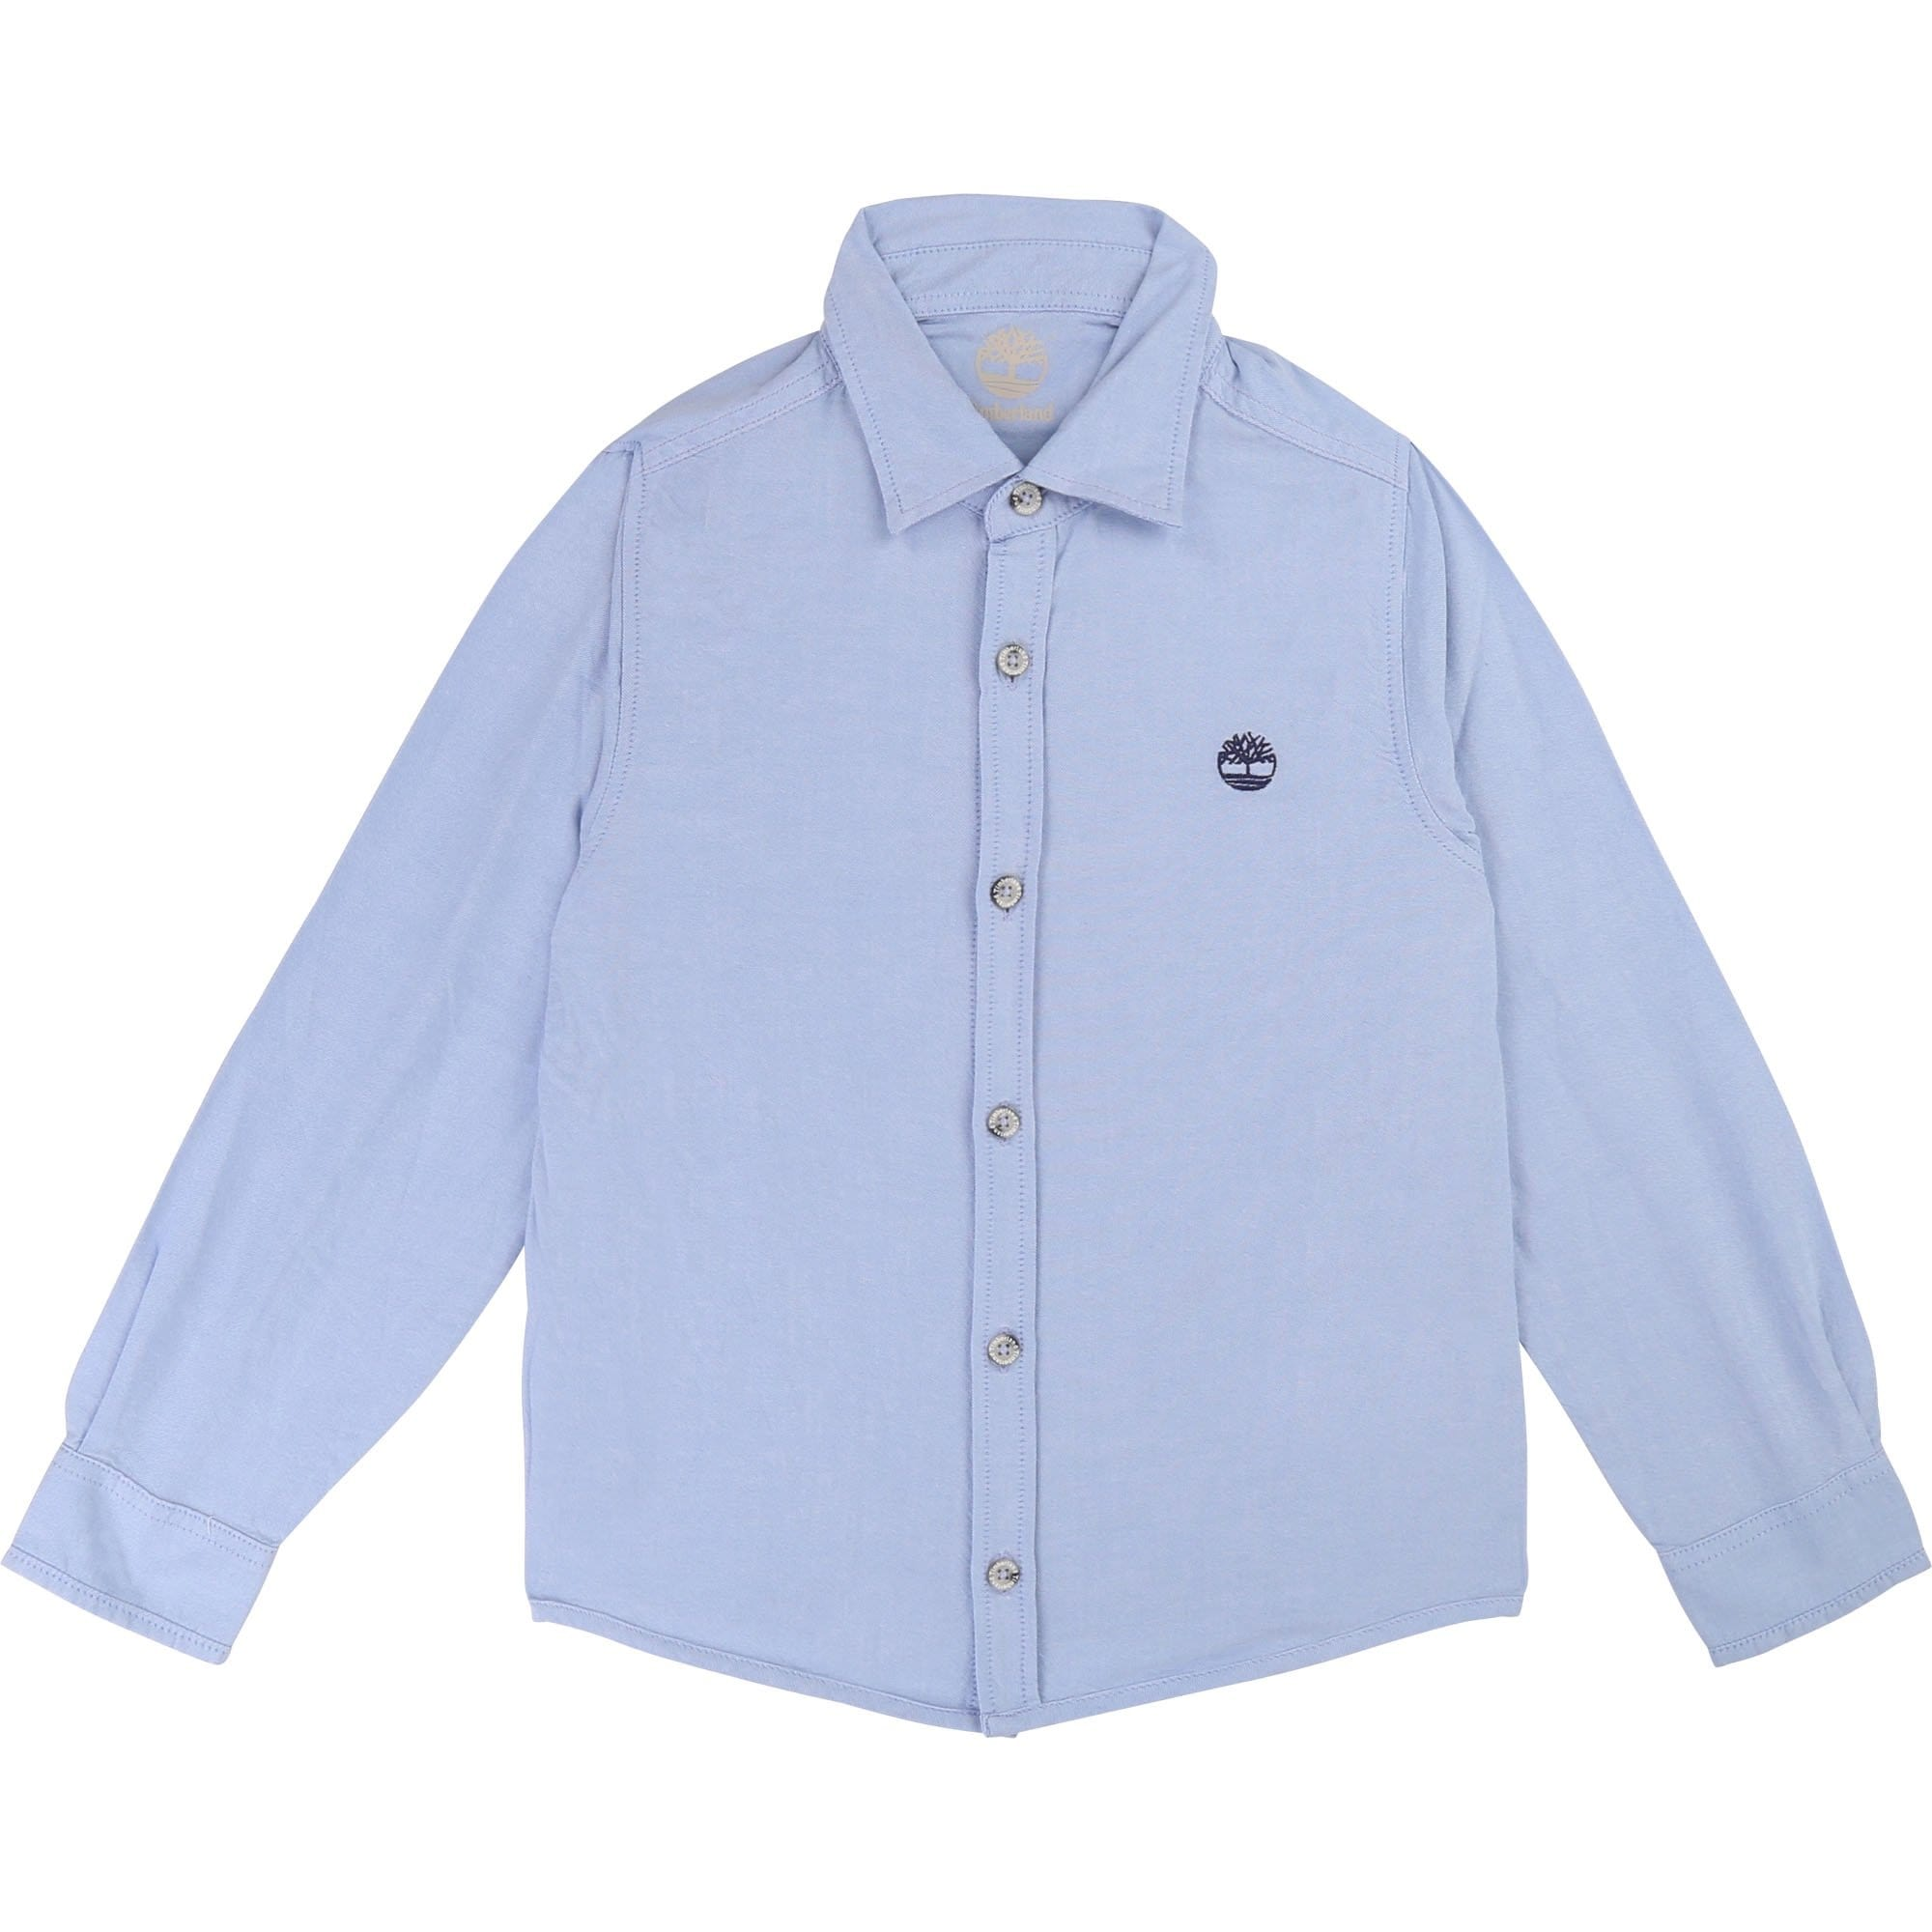 Timberland Long Sleeve Shirt